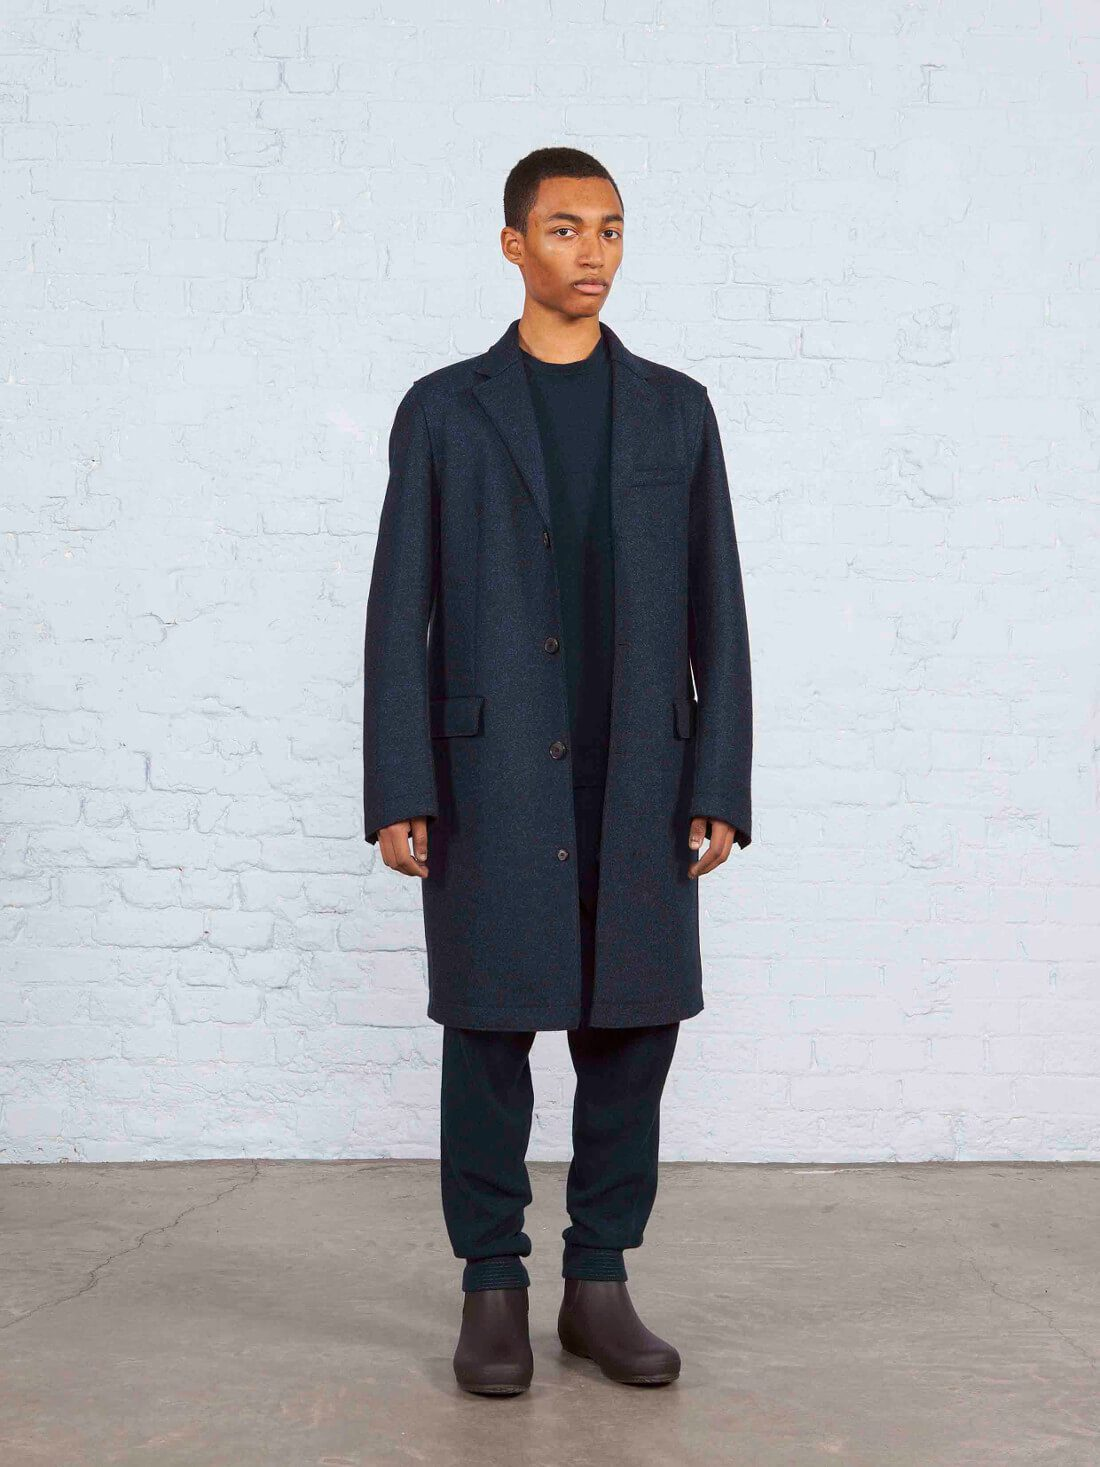 mw_aw17_look-8